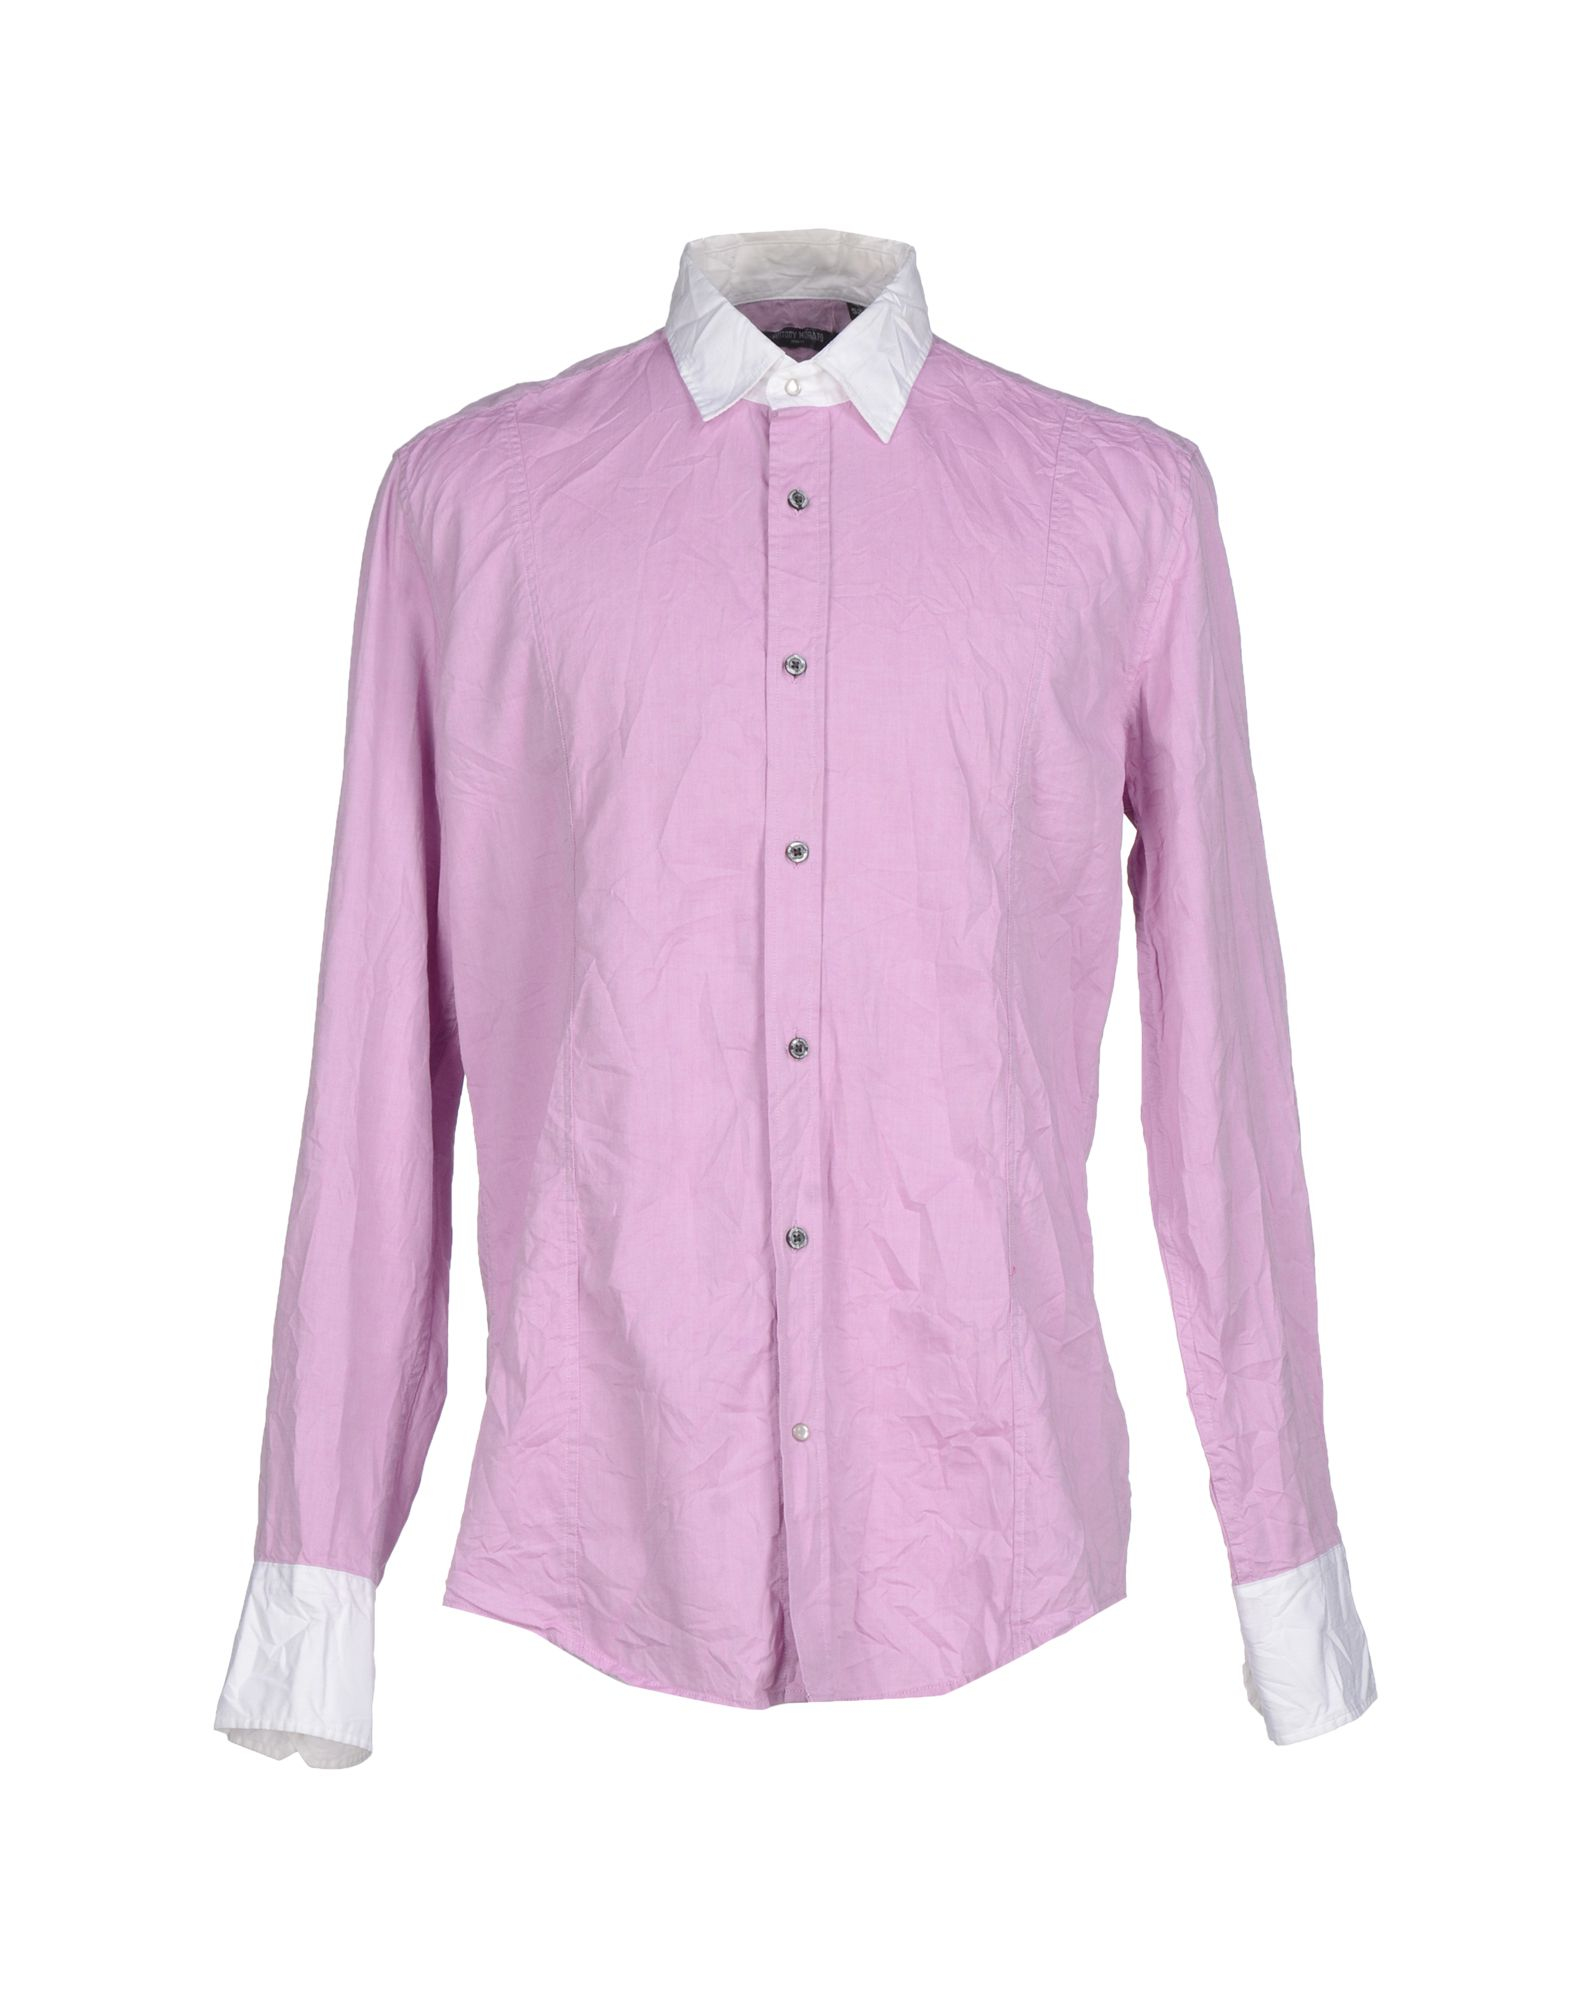 Lyst antony morato shirt in purple for men Light purple dress shirt men